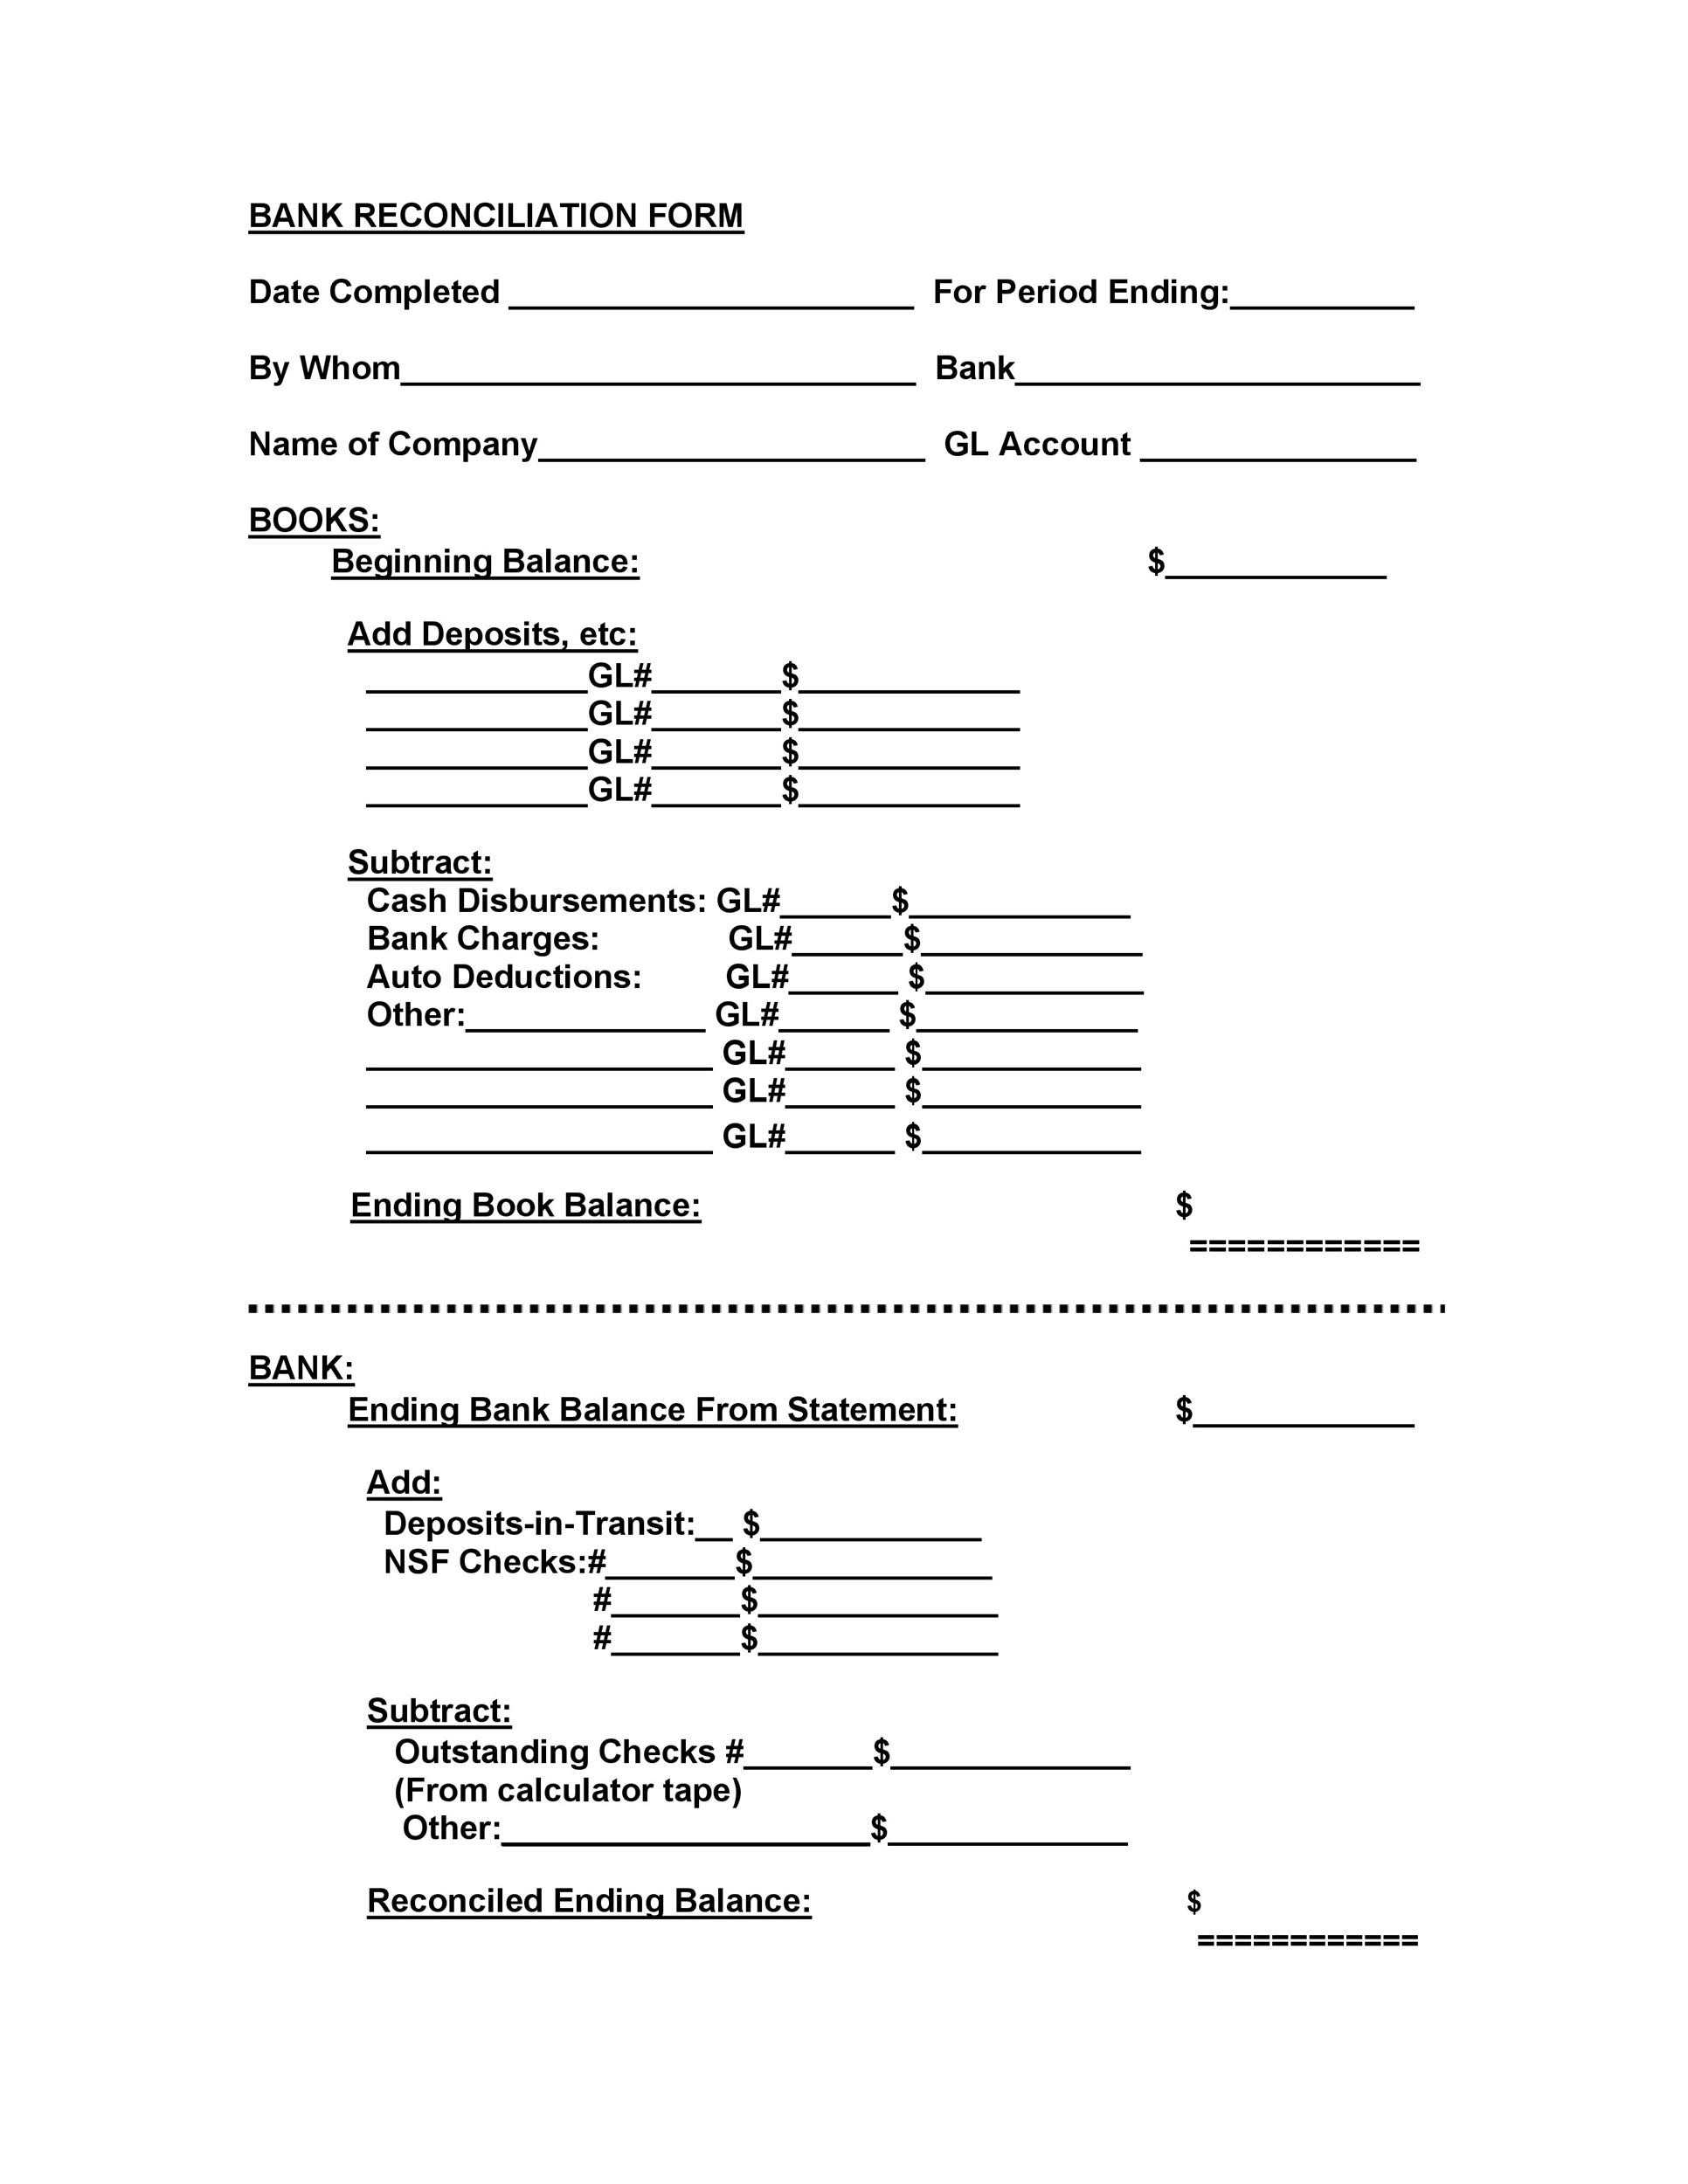 50+ Bank Reconciliation Examples  Templates 100 Free - bank reconciliation sheet